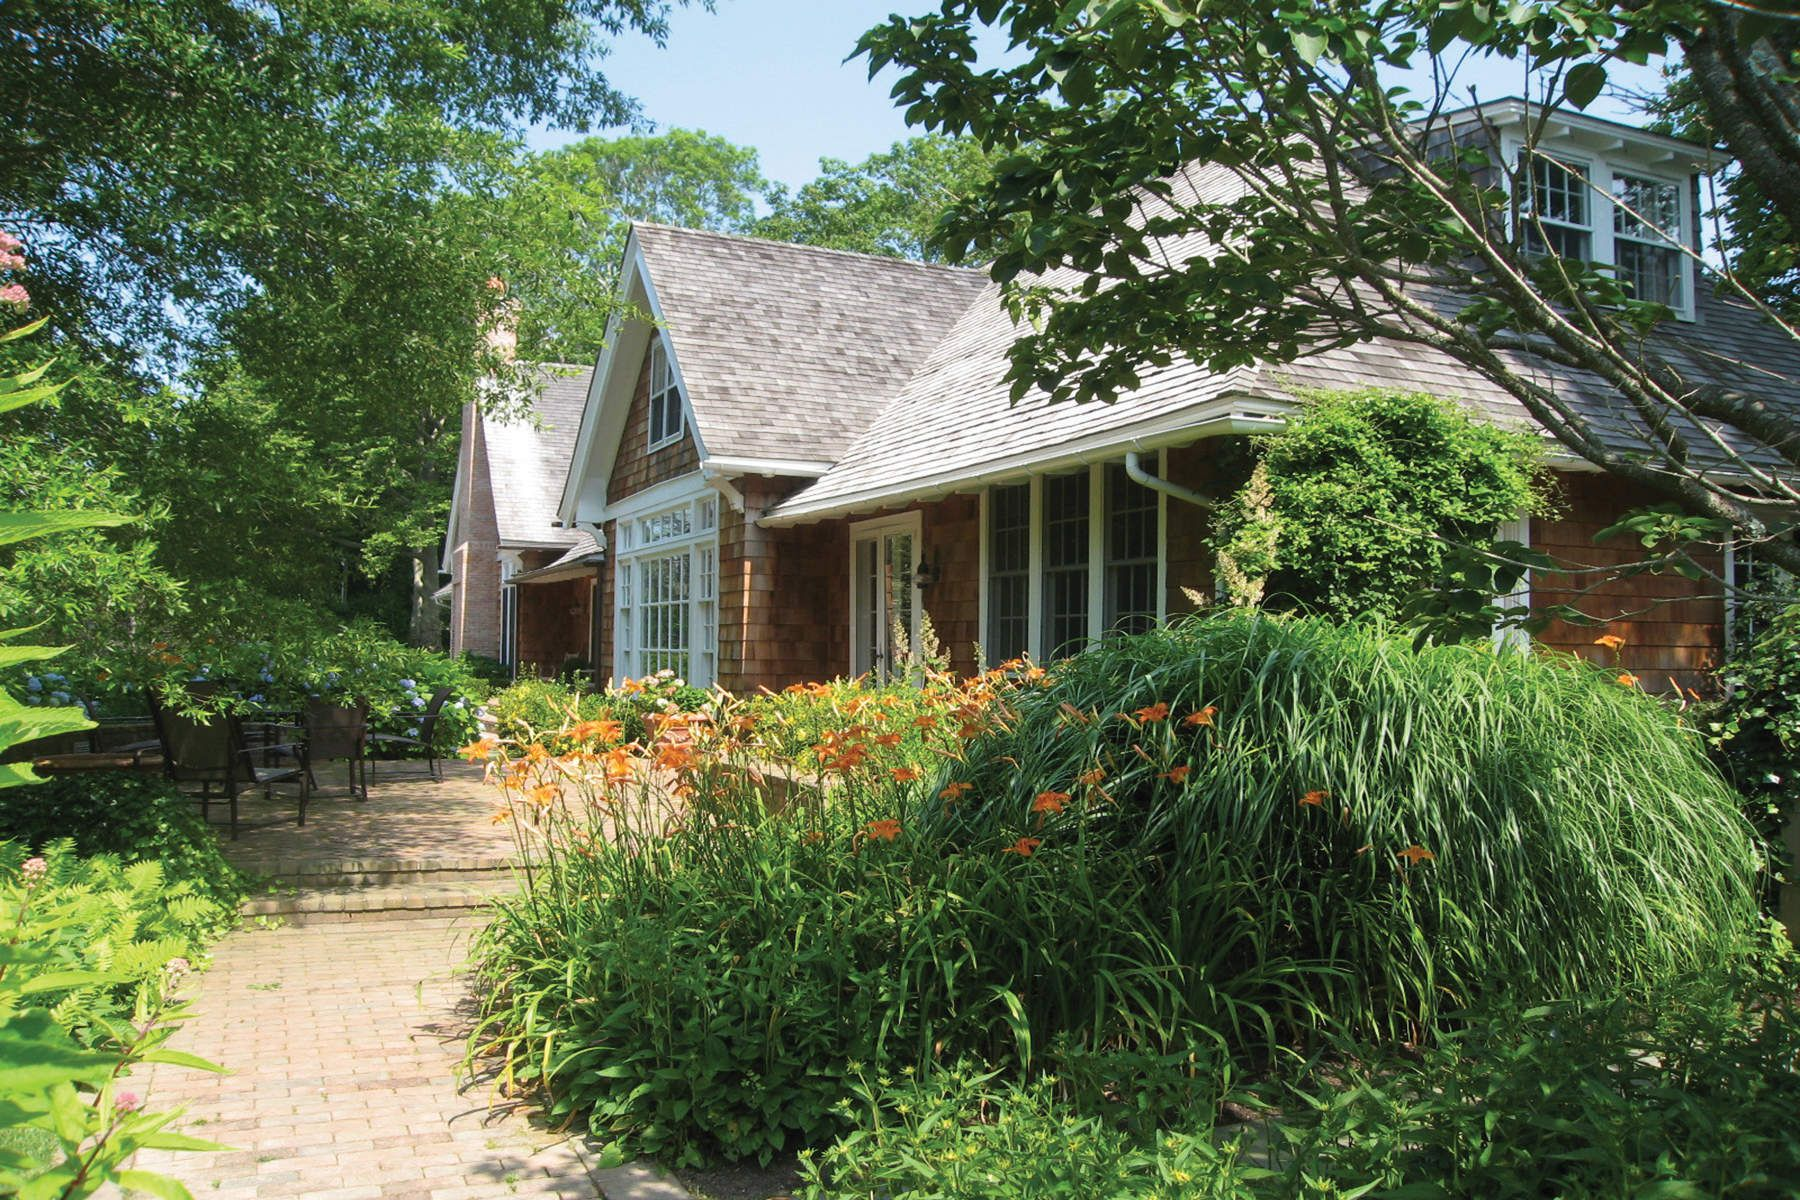 Single Family Home for Rent at Updated Georgica Carriage House 46 Georgica Road East Hampton, New York 11937 United States